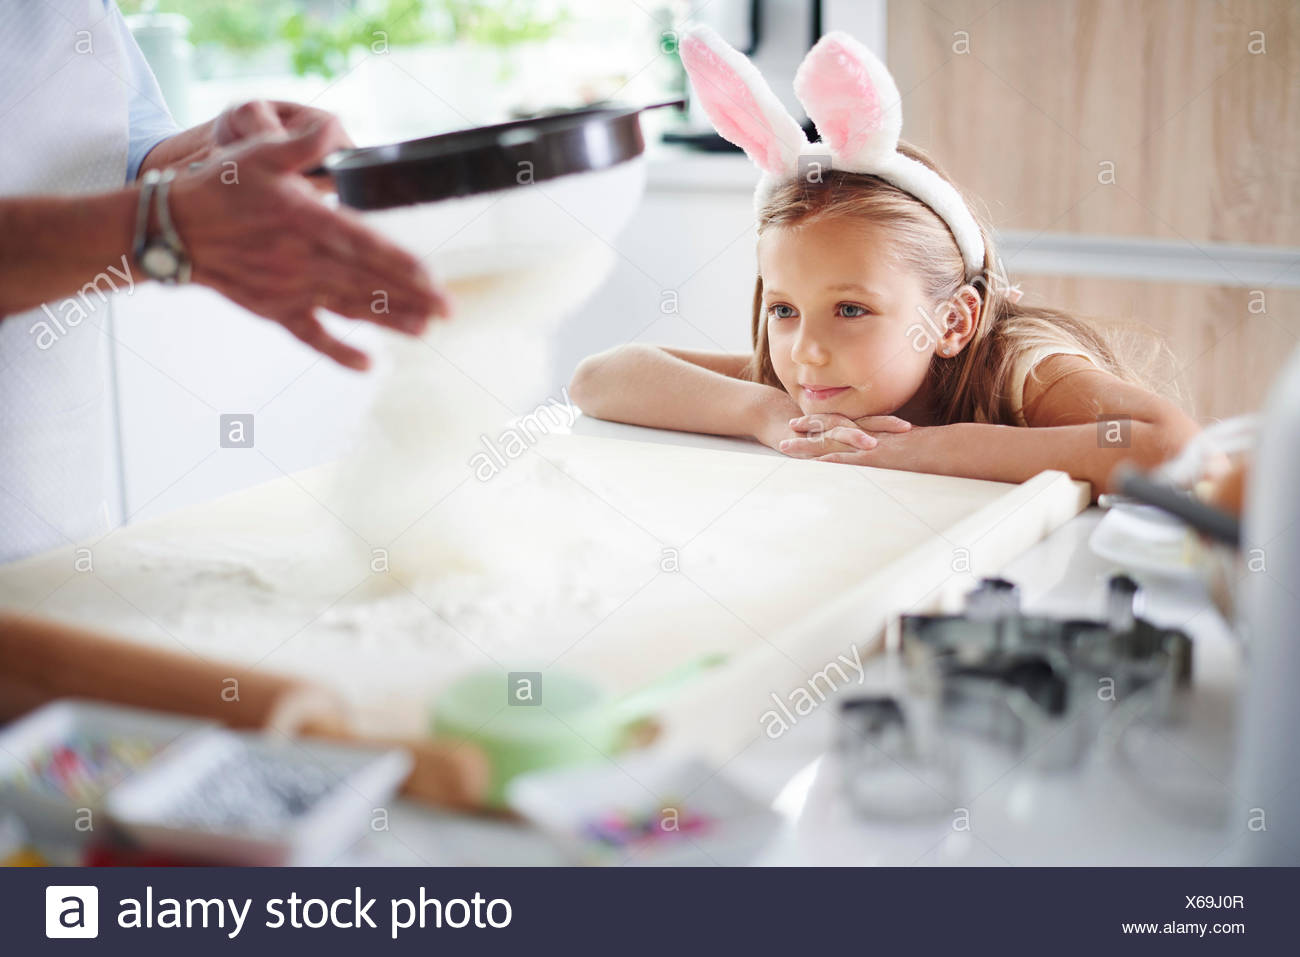 Girl watching grandmother sift flour for easter baking - Stock Image